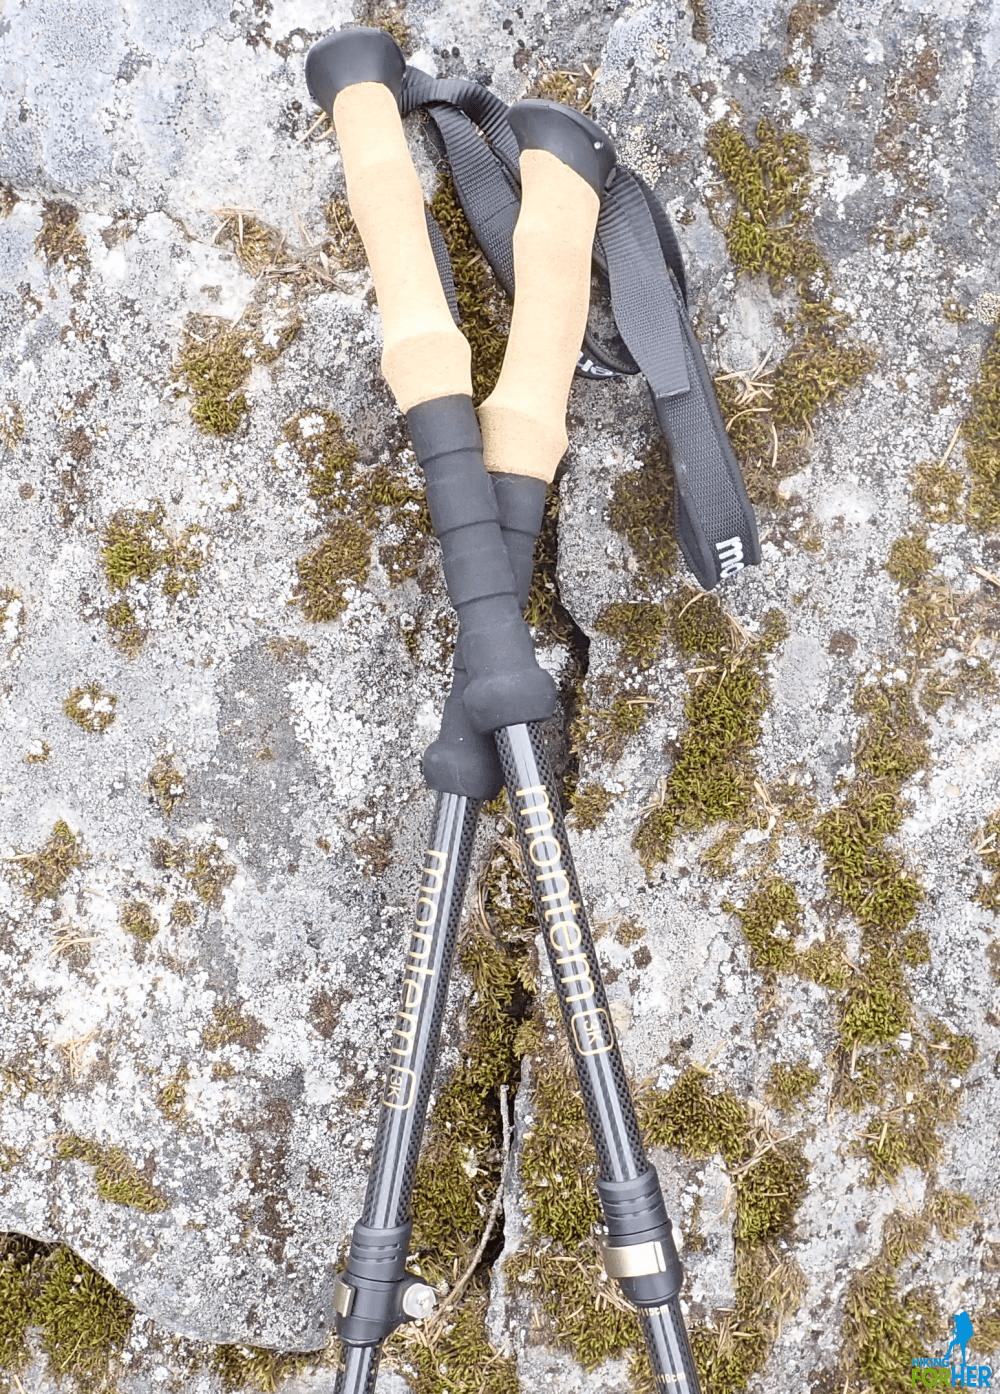 Montem trekking poles with cork grips and black hand straps